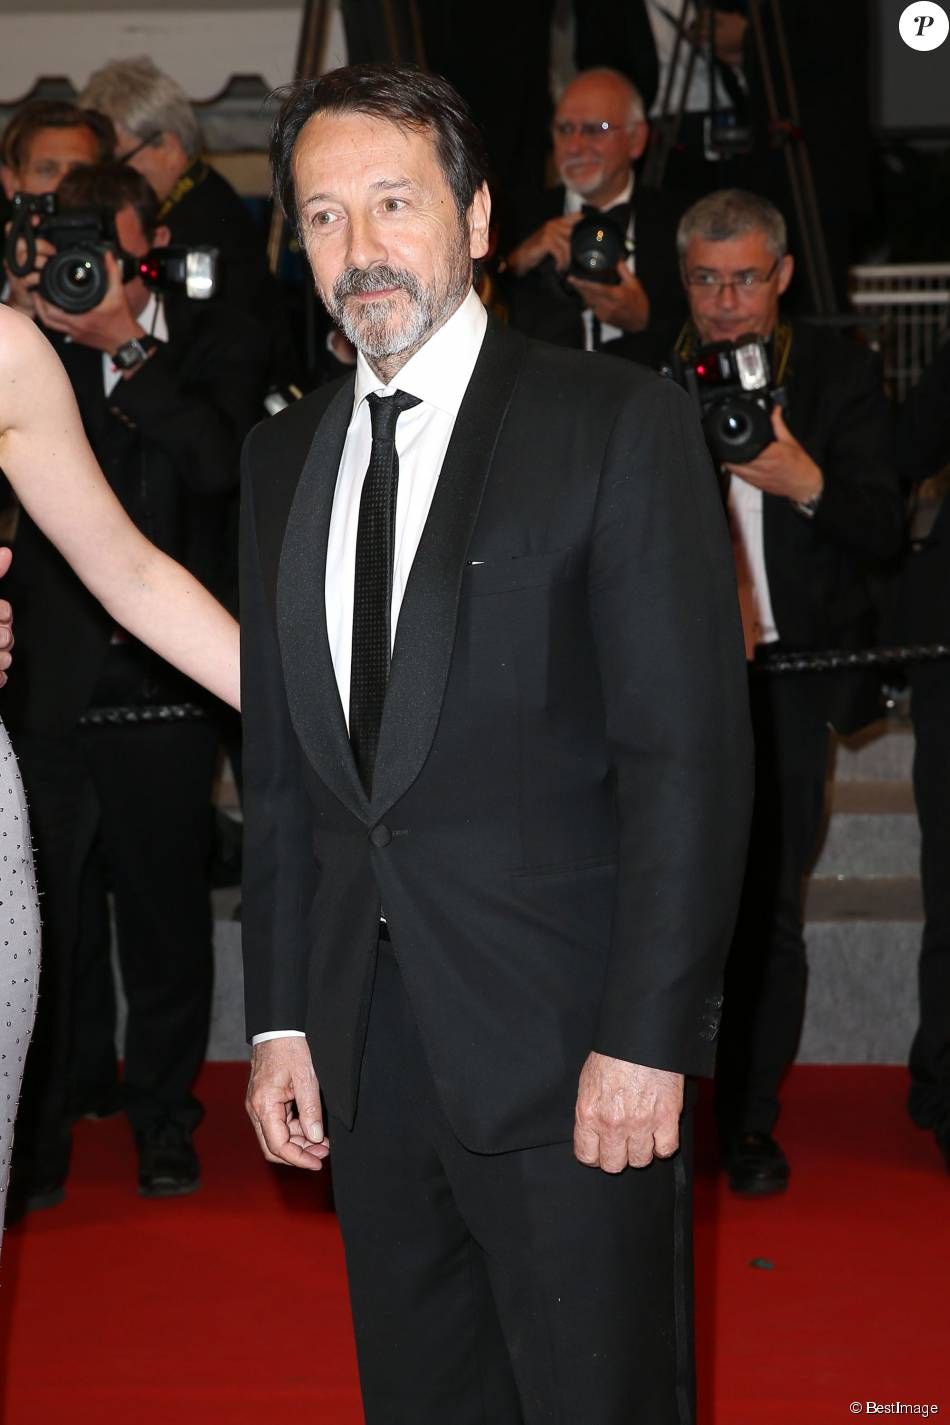 "Jean-Hugues Anglade - Montée des marches du film ""Shan He Gu Ren"" (Mountains May Depart) lors du 68 ème Festival International du Film de Cannes, à Cannes le 20 mai 2015."